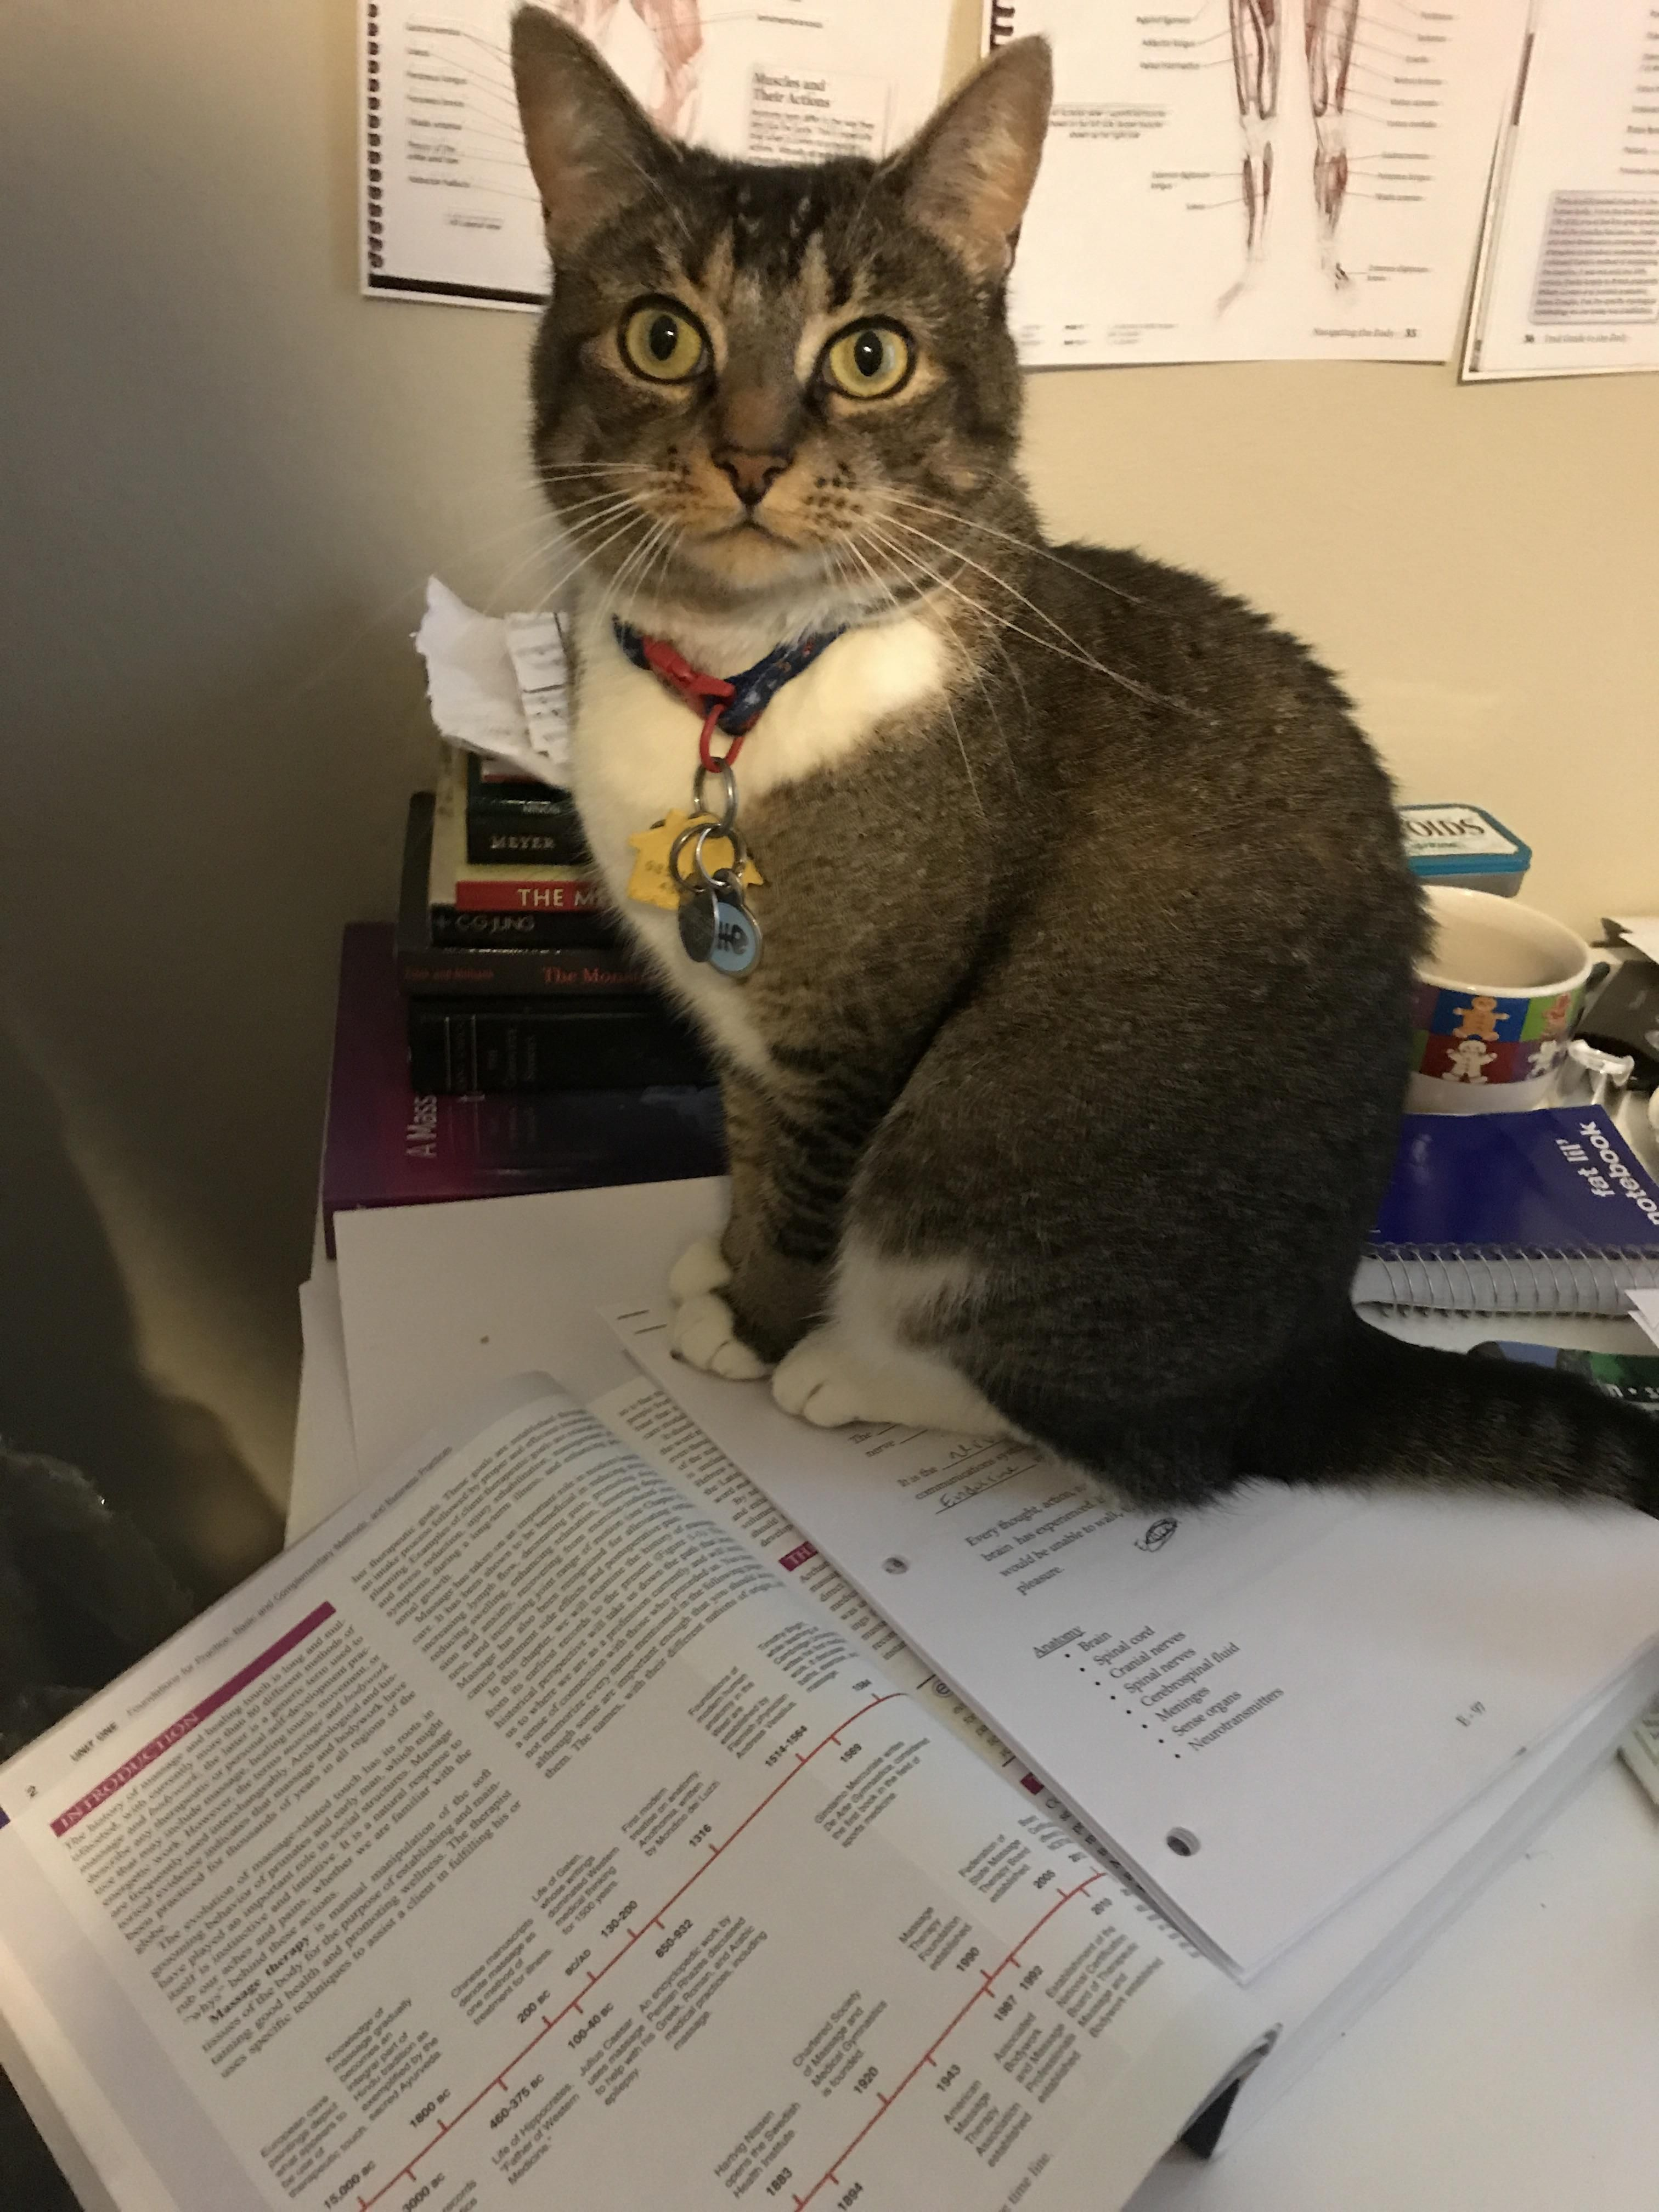 The answer to my homework's most difficult questions is: Cat. http://ift.tt/2qXxKQu